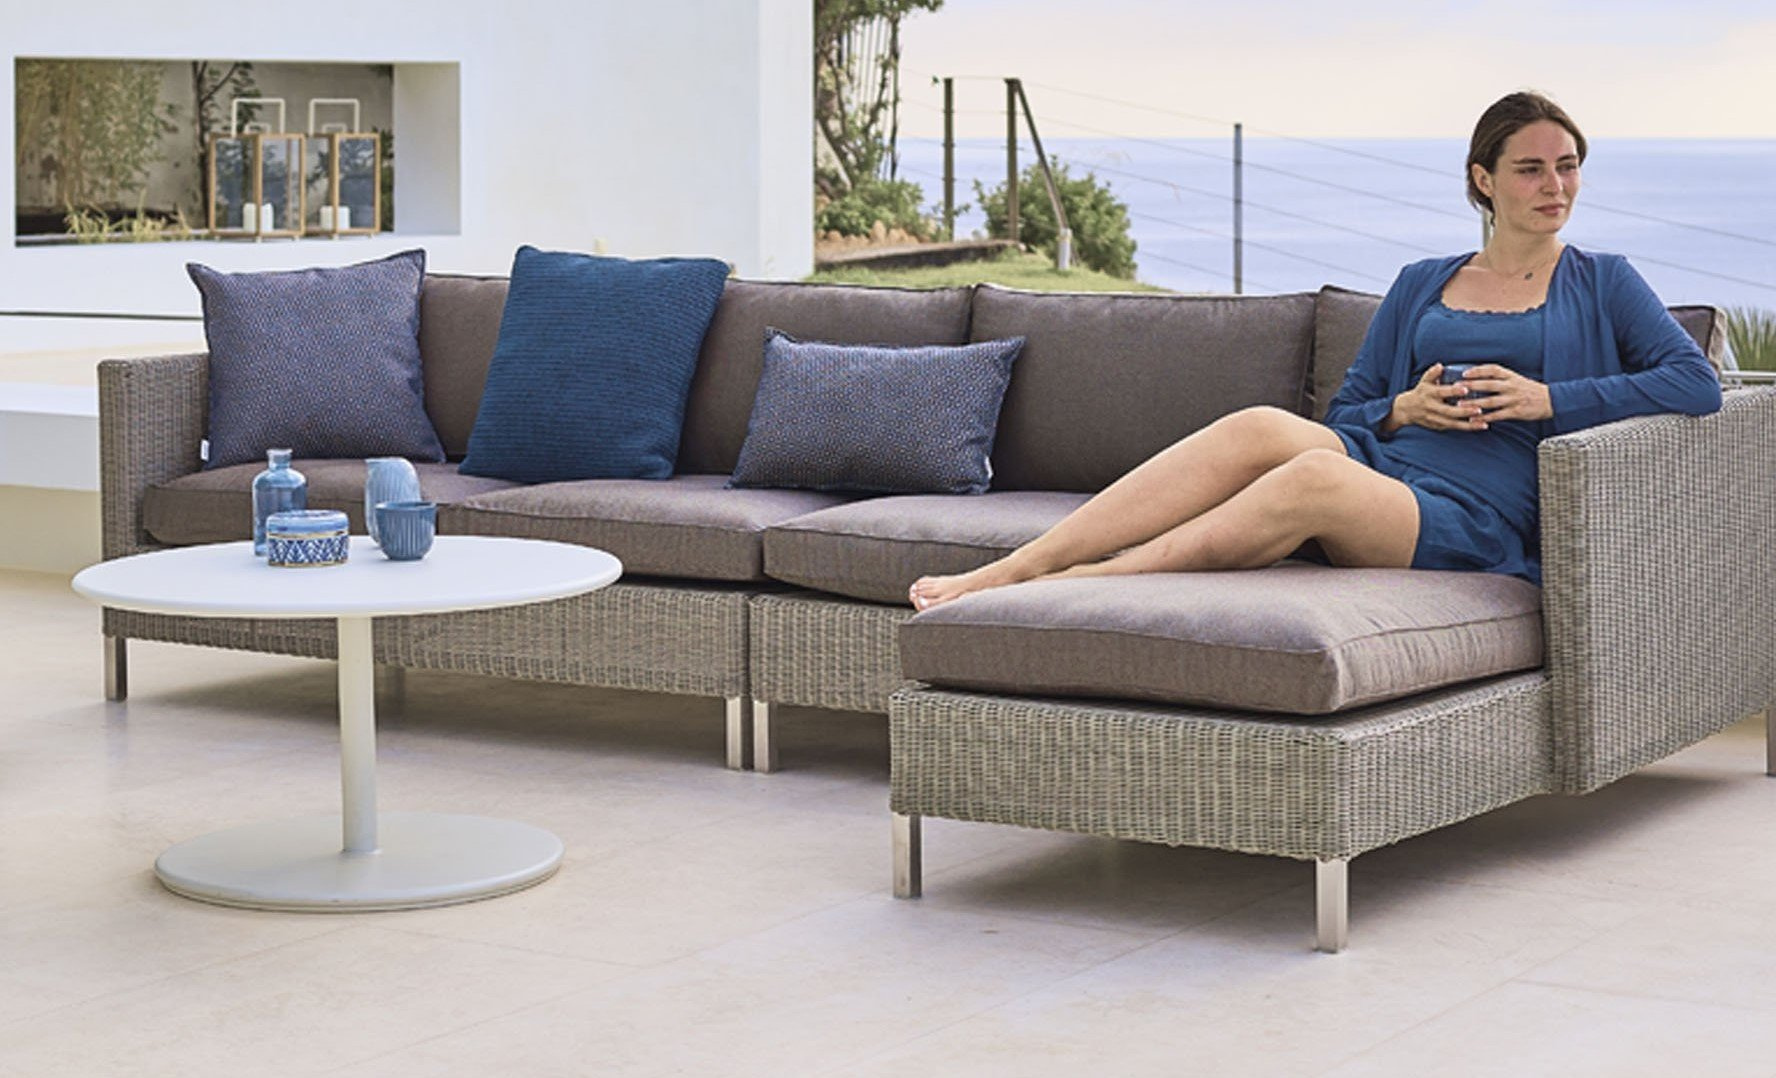 Connect Single Seat Module Sofa modular from Cane-line